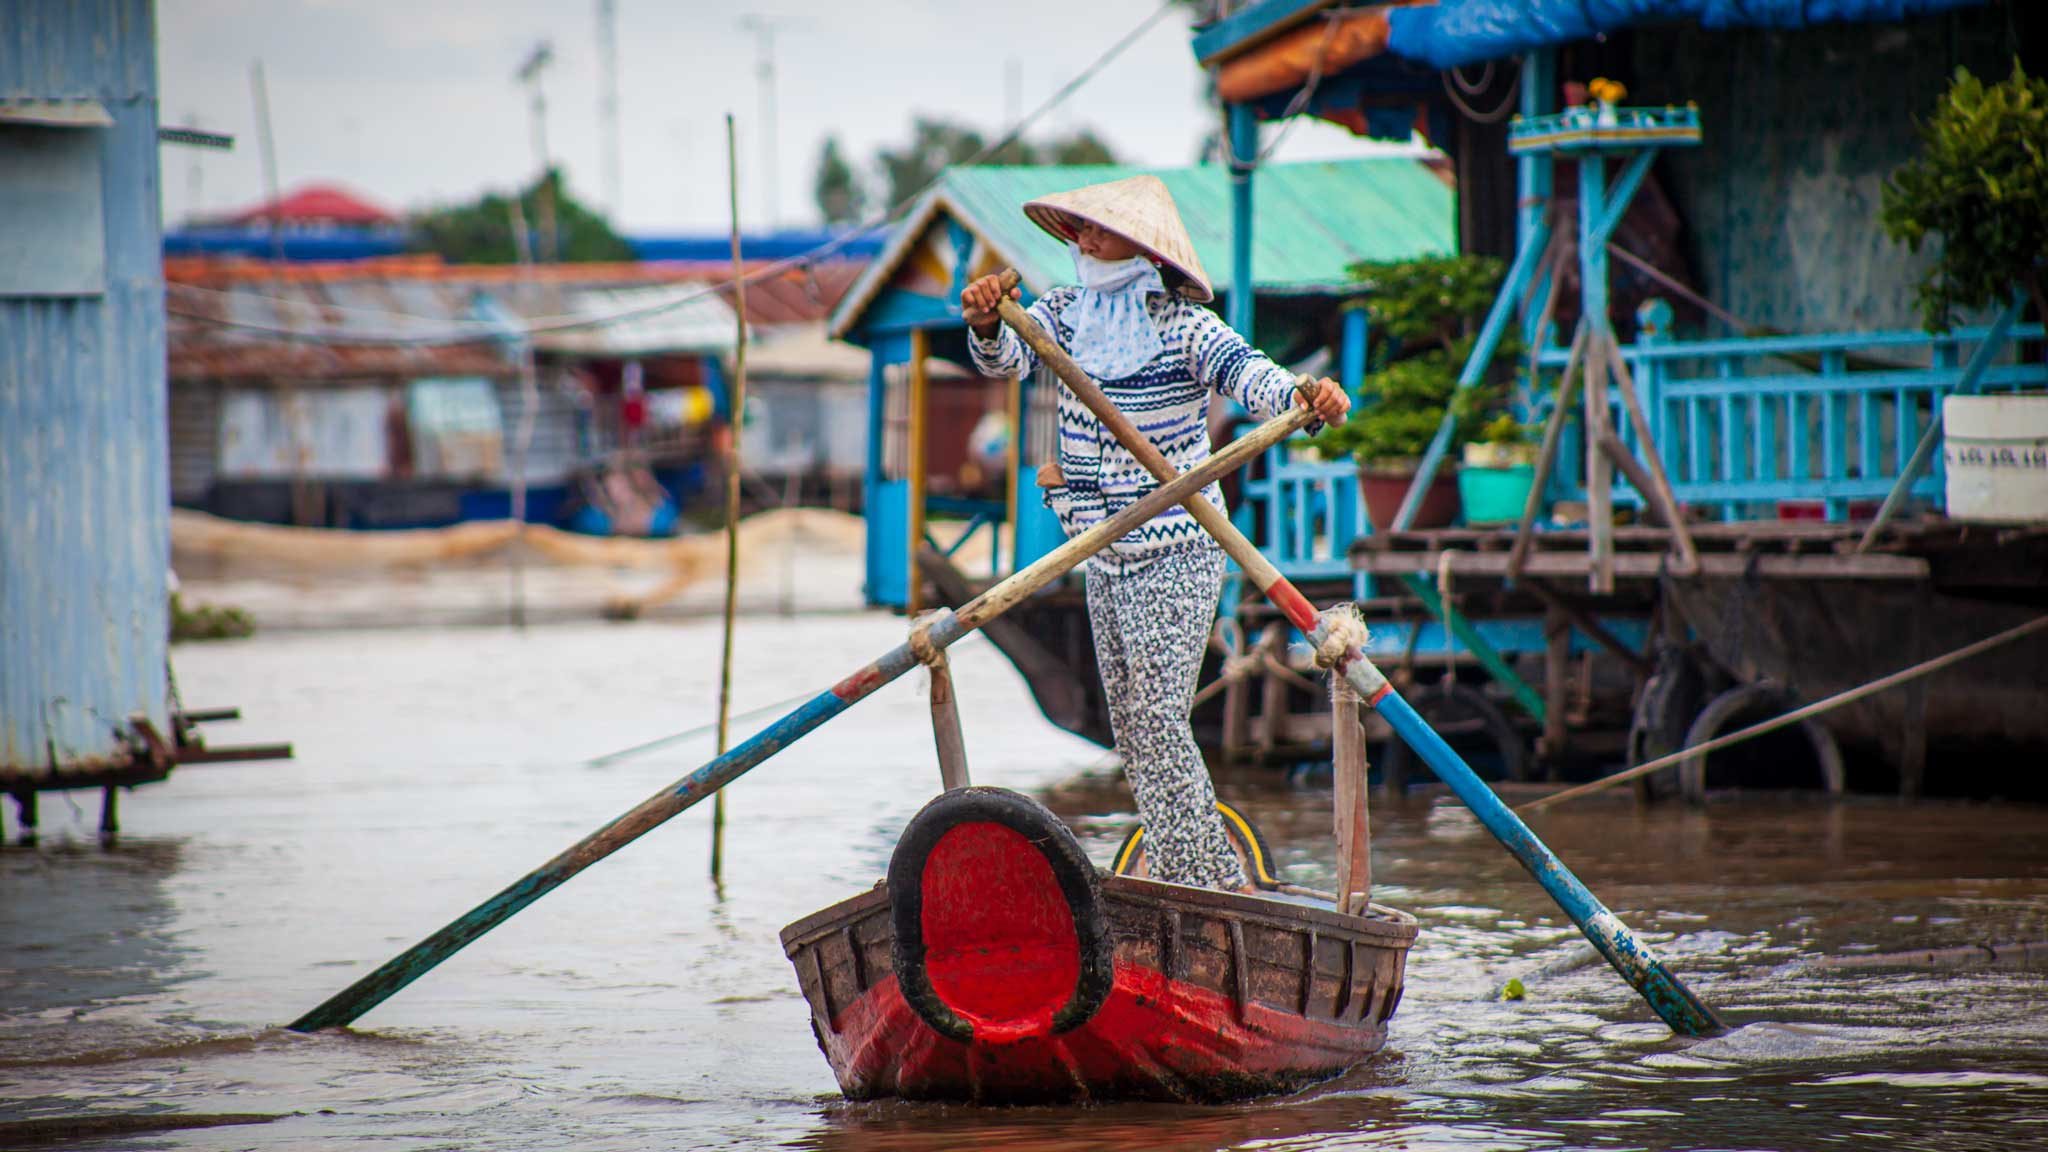 Heading to the market from the floating villages